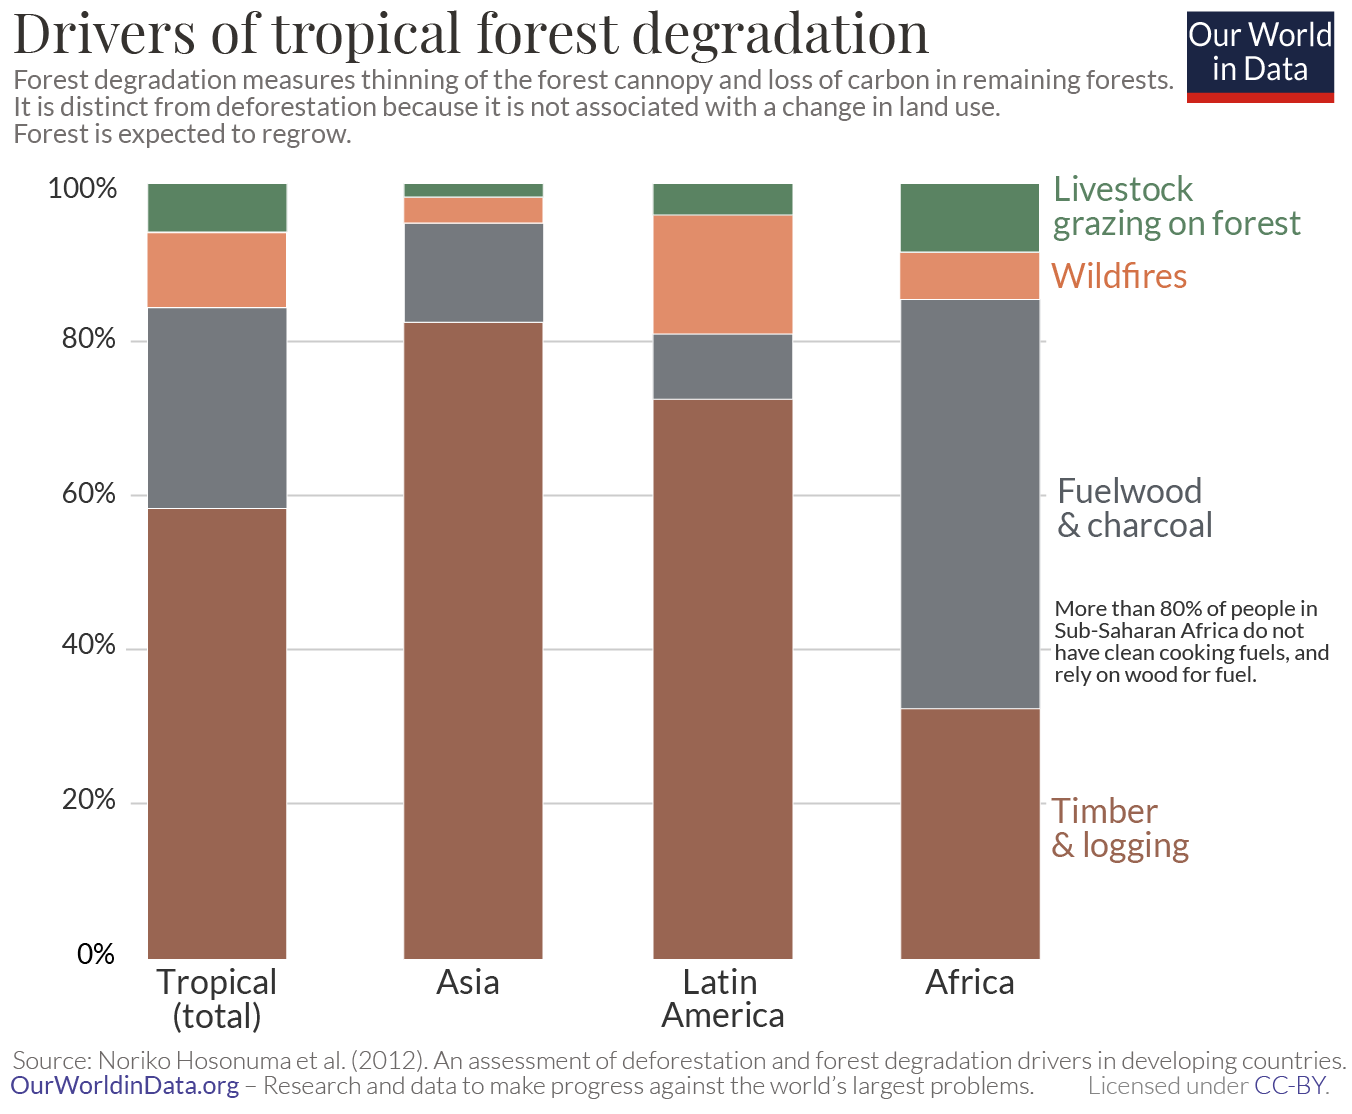 Drivers of forest degradation